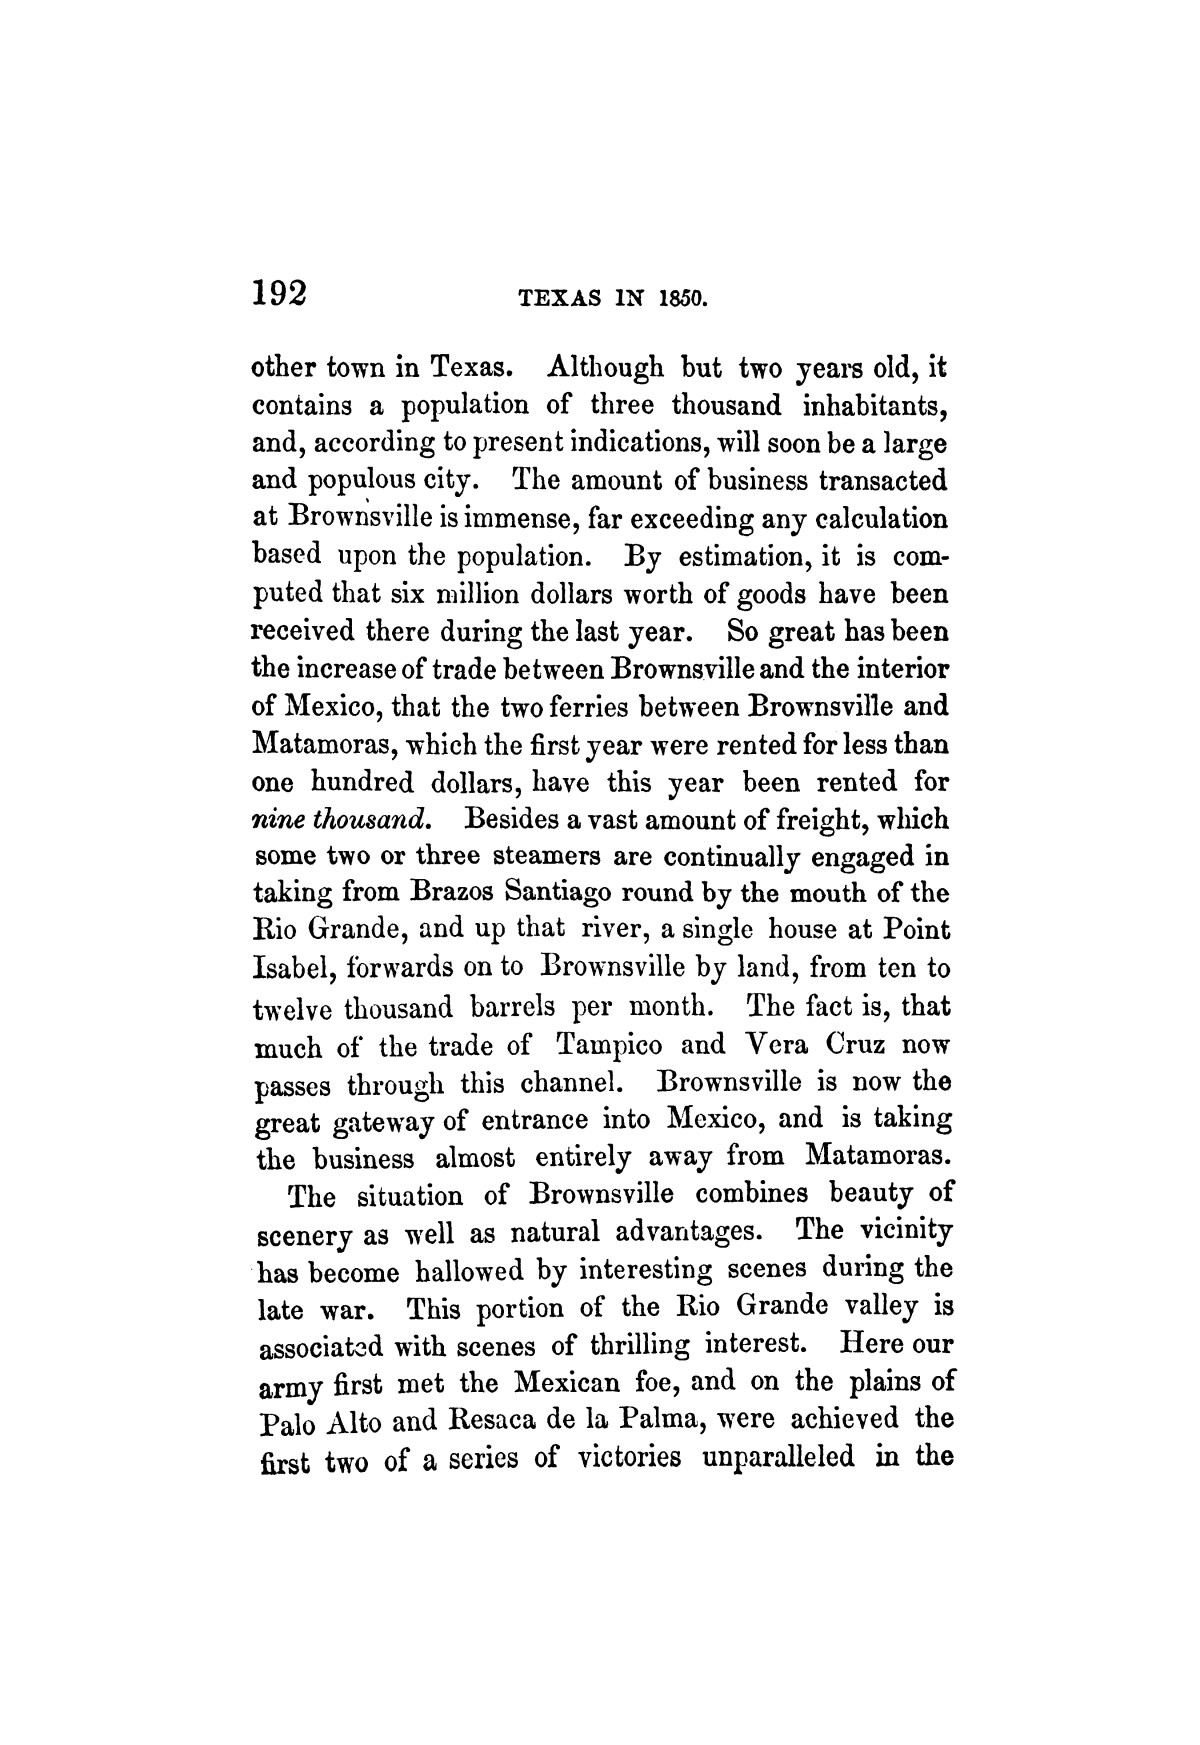 Texas in 1850. By Melinda Rankin.                                                                                                      [Sequence #]: 189 of 196